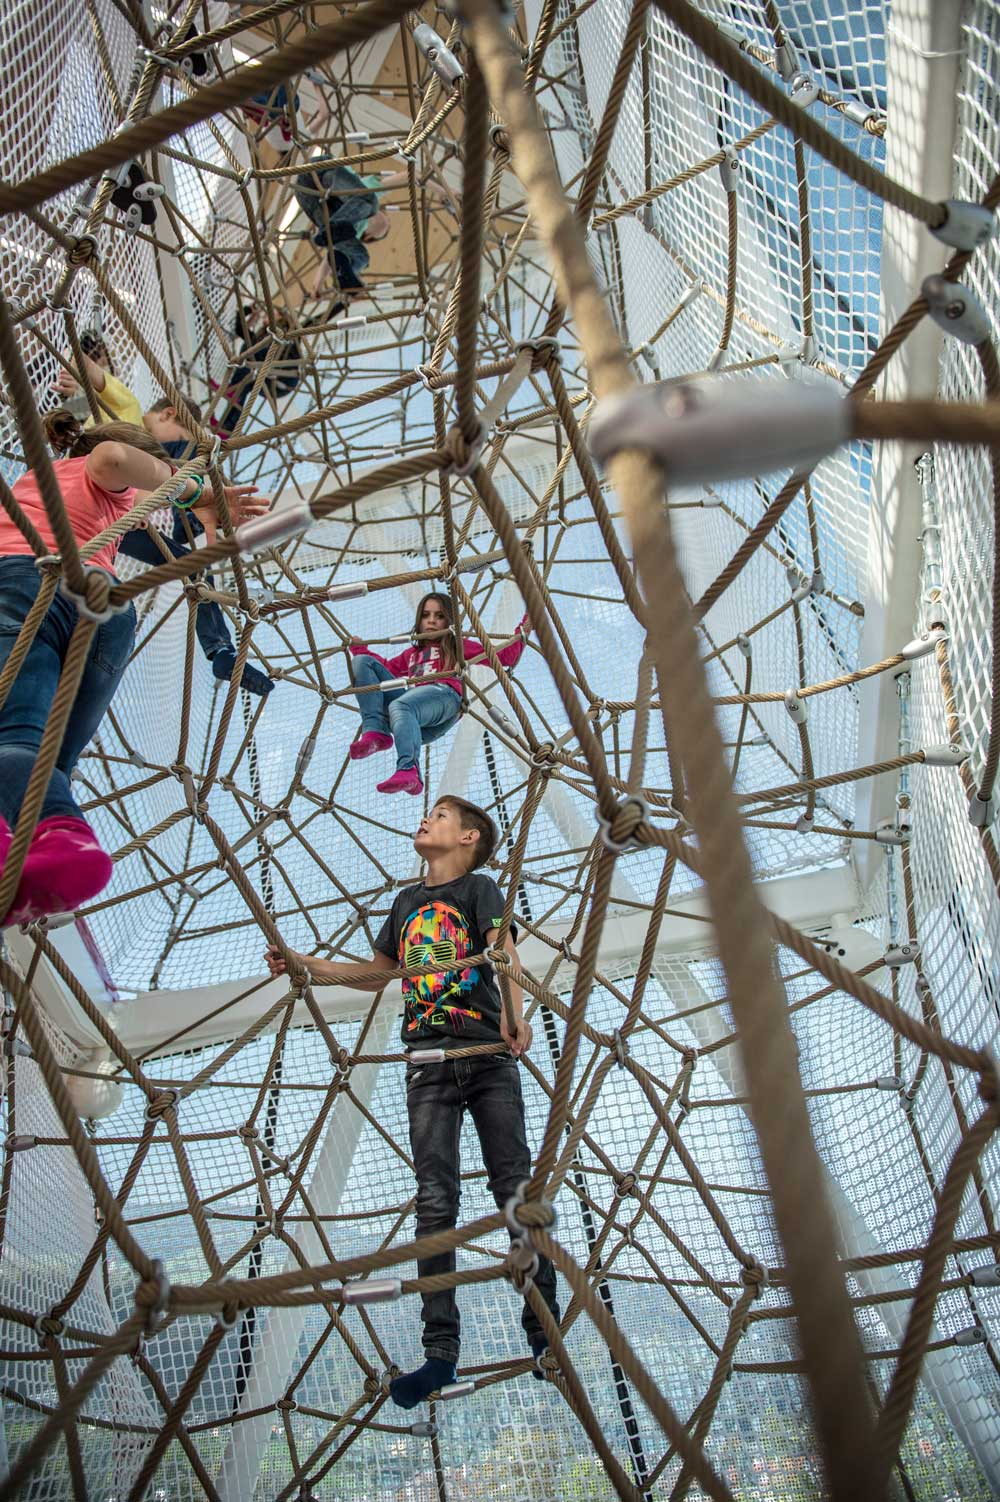 Swarovski, indoor spatial net - Berliner Seilfabrik – Play equipment for life